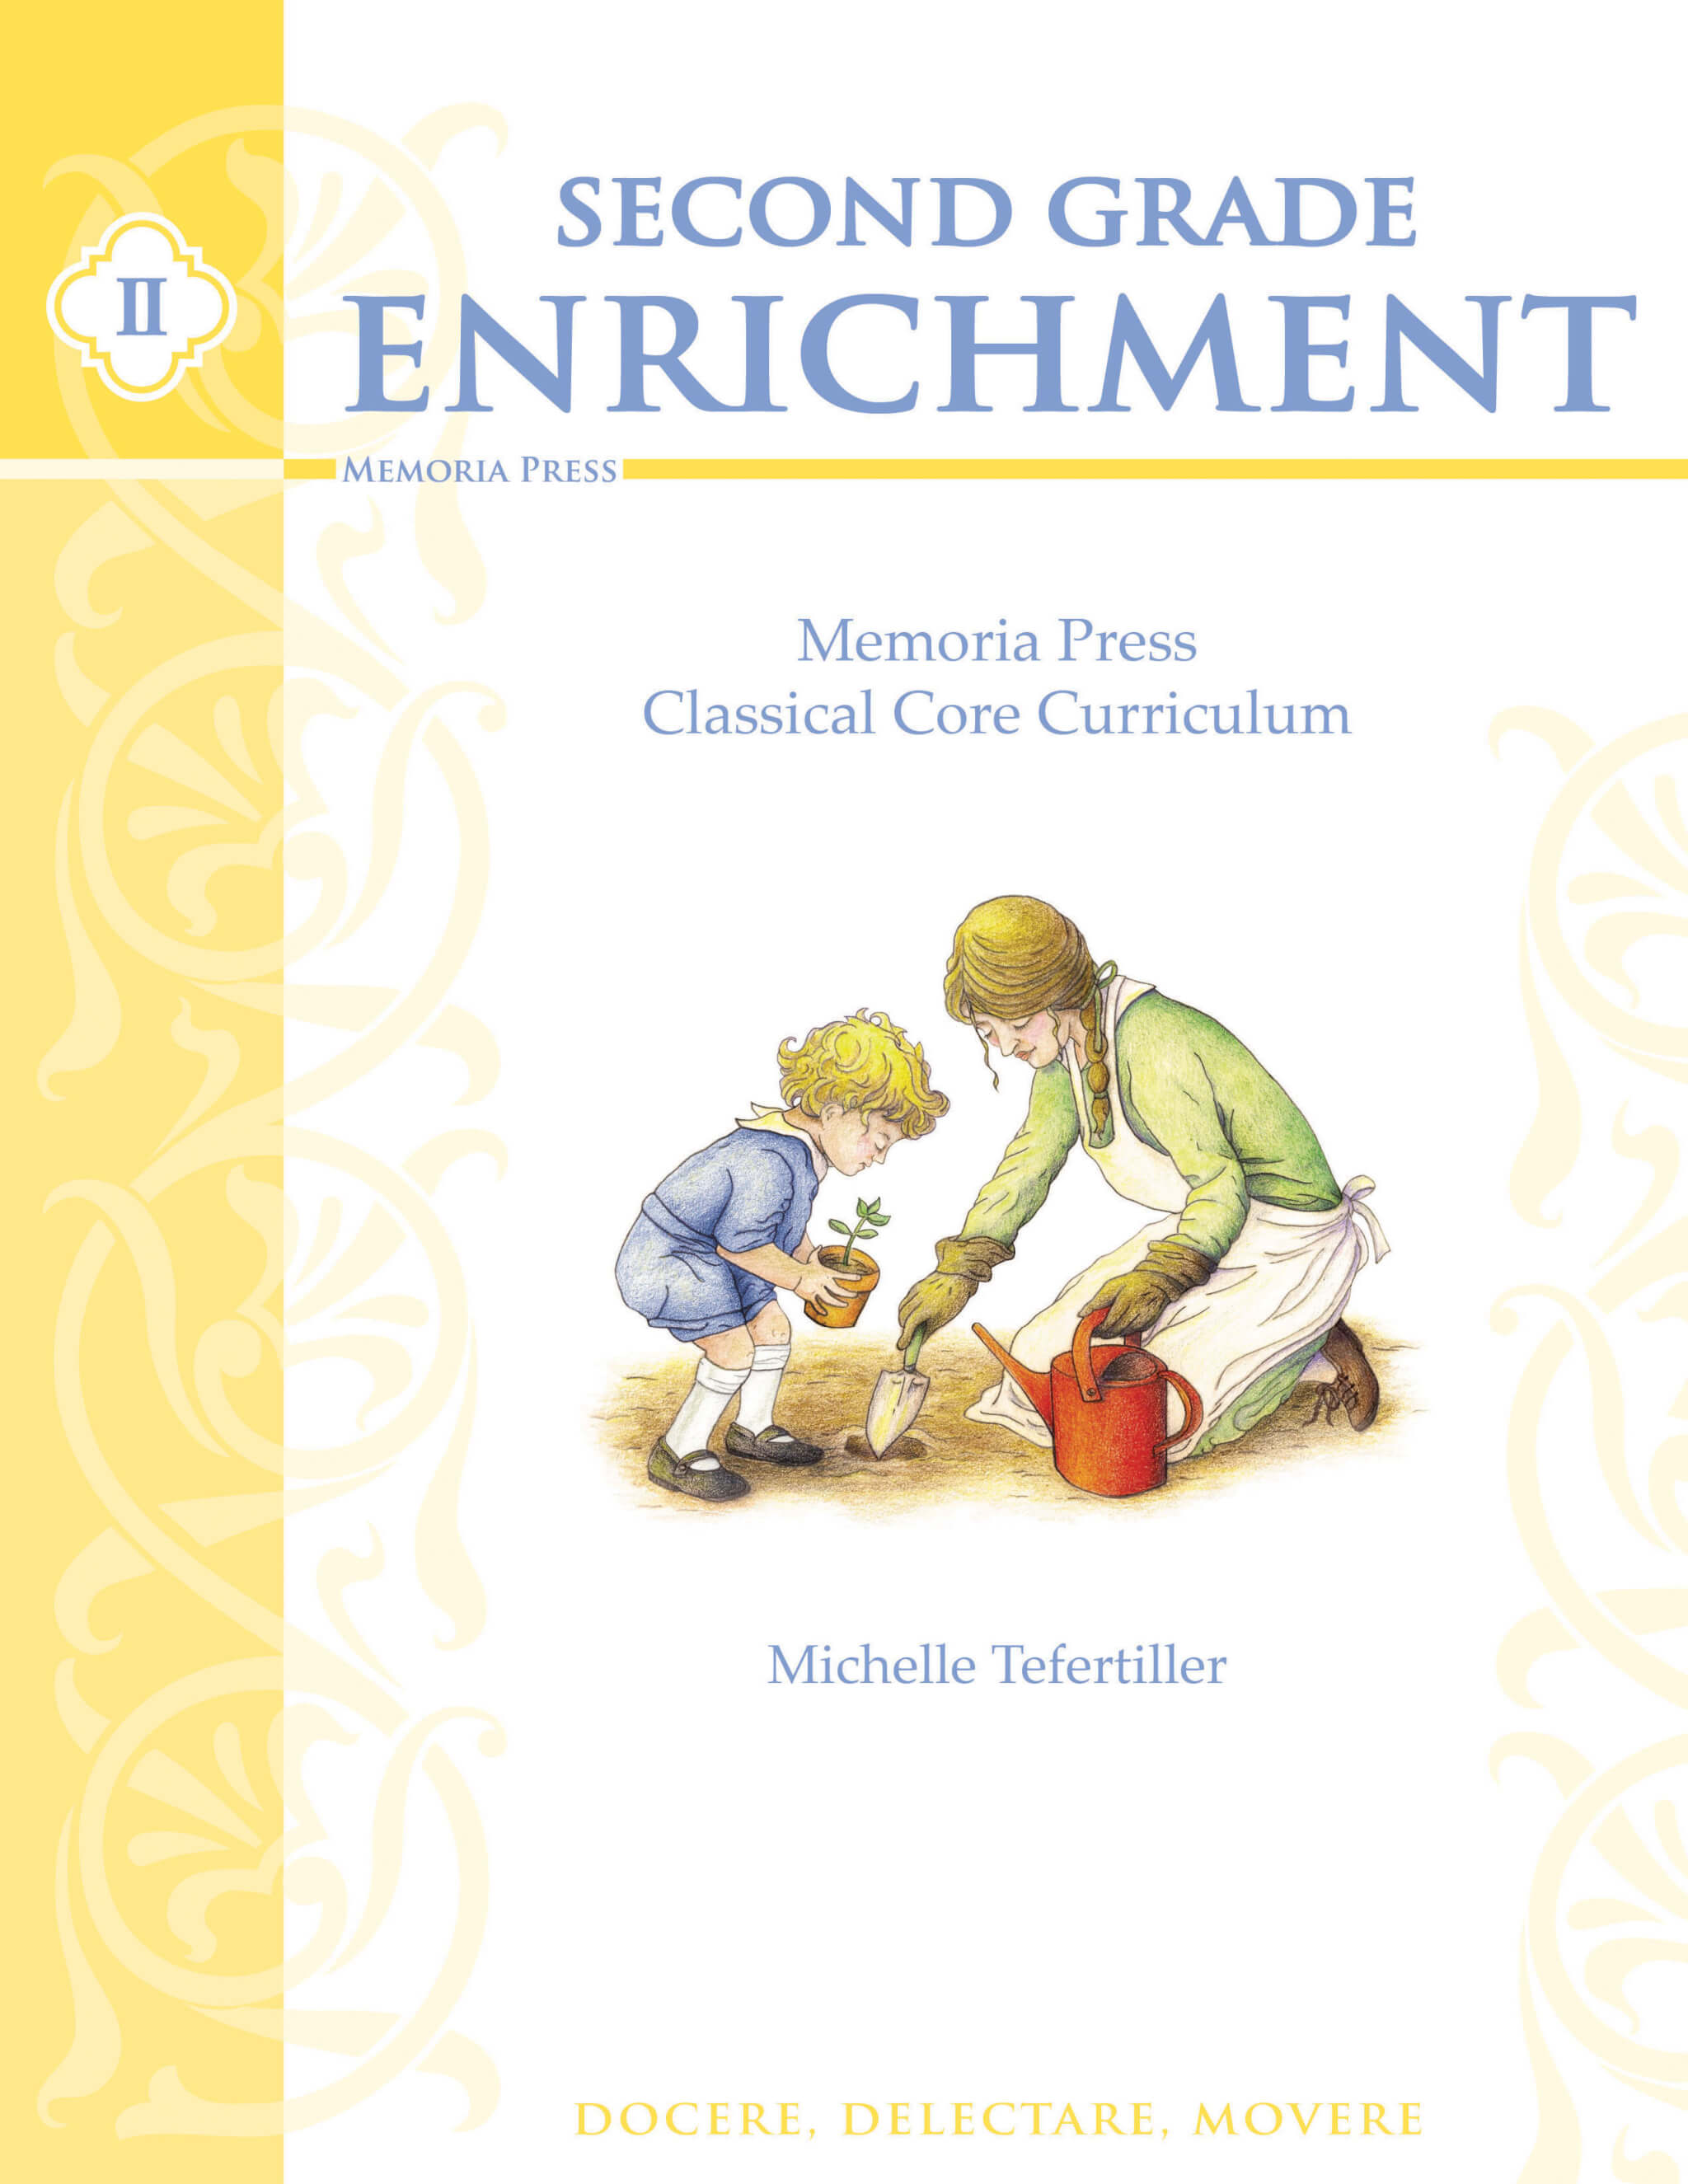 enrichment in your classical Christian curriculum